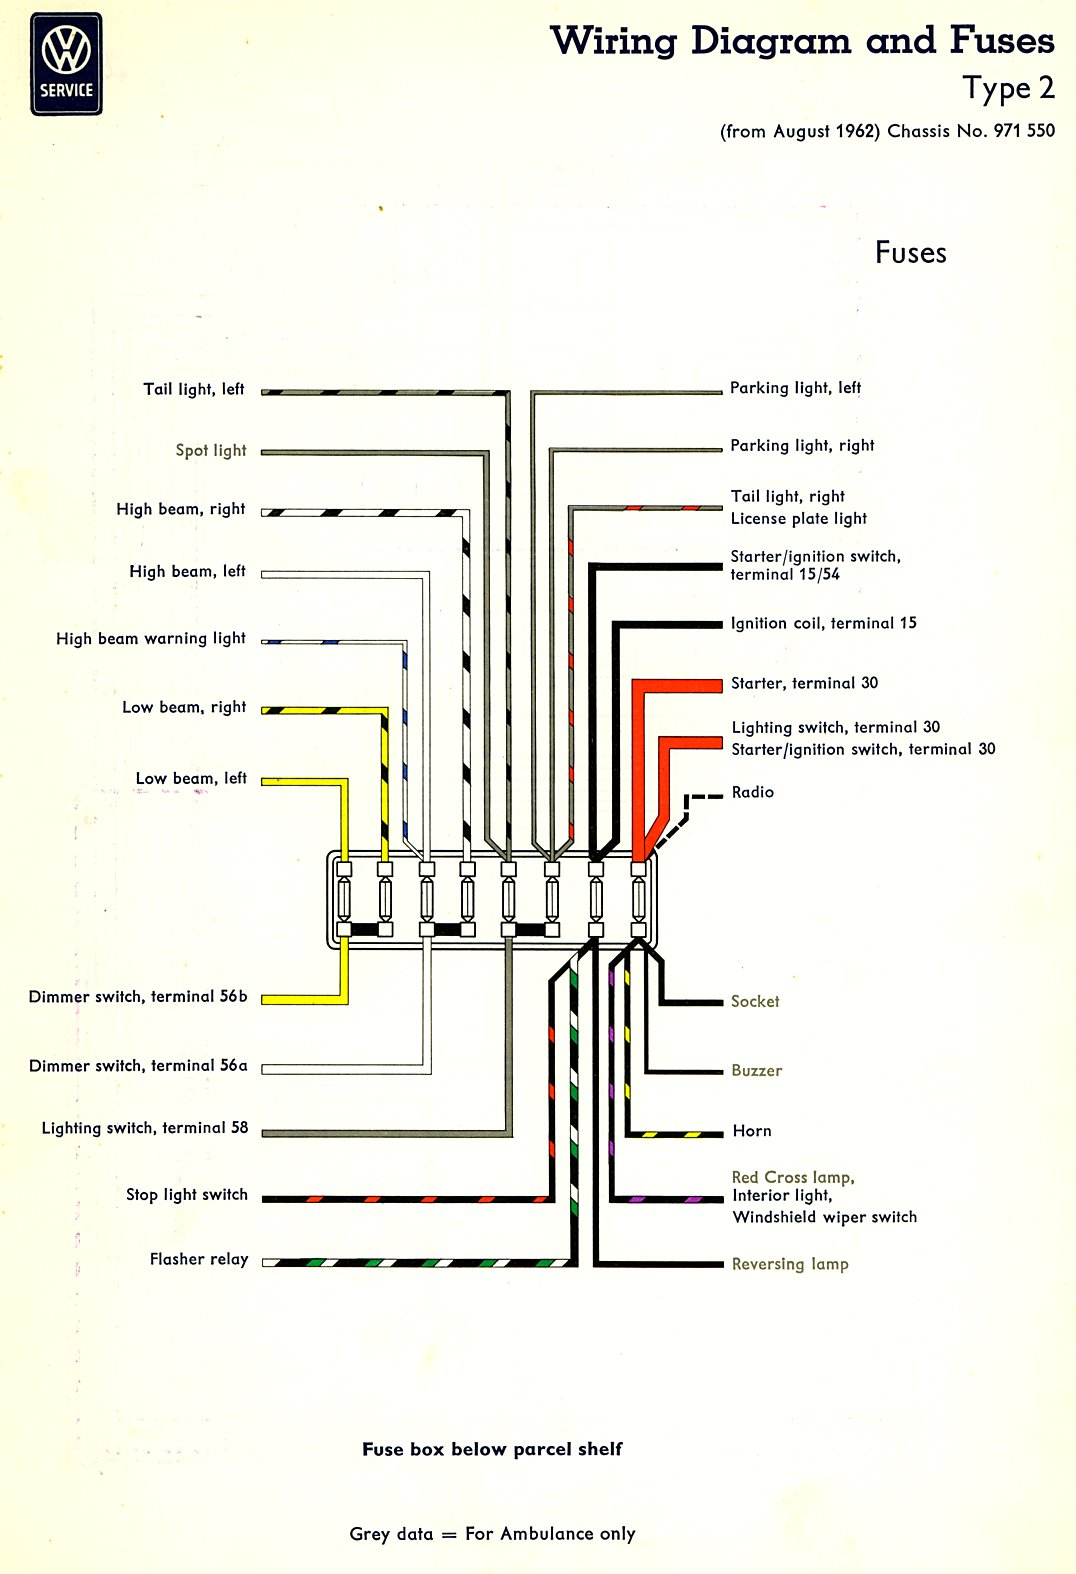 Type 2 Wiring Diagrams 1970 F100 Electric Fan Relay Diagram